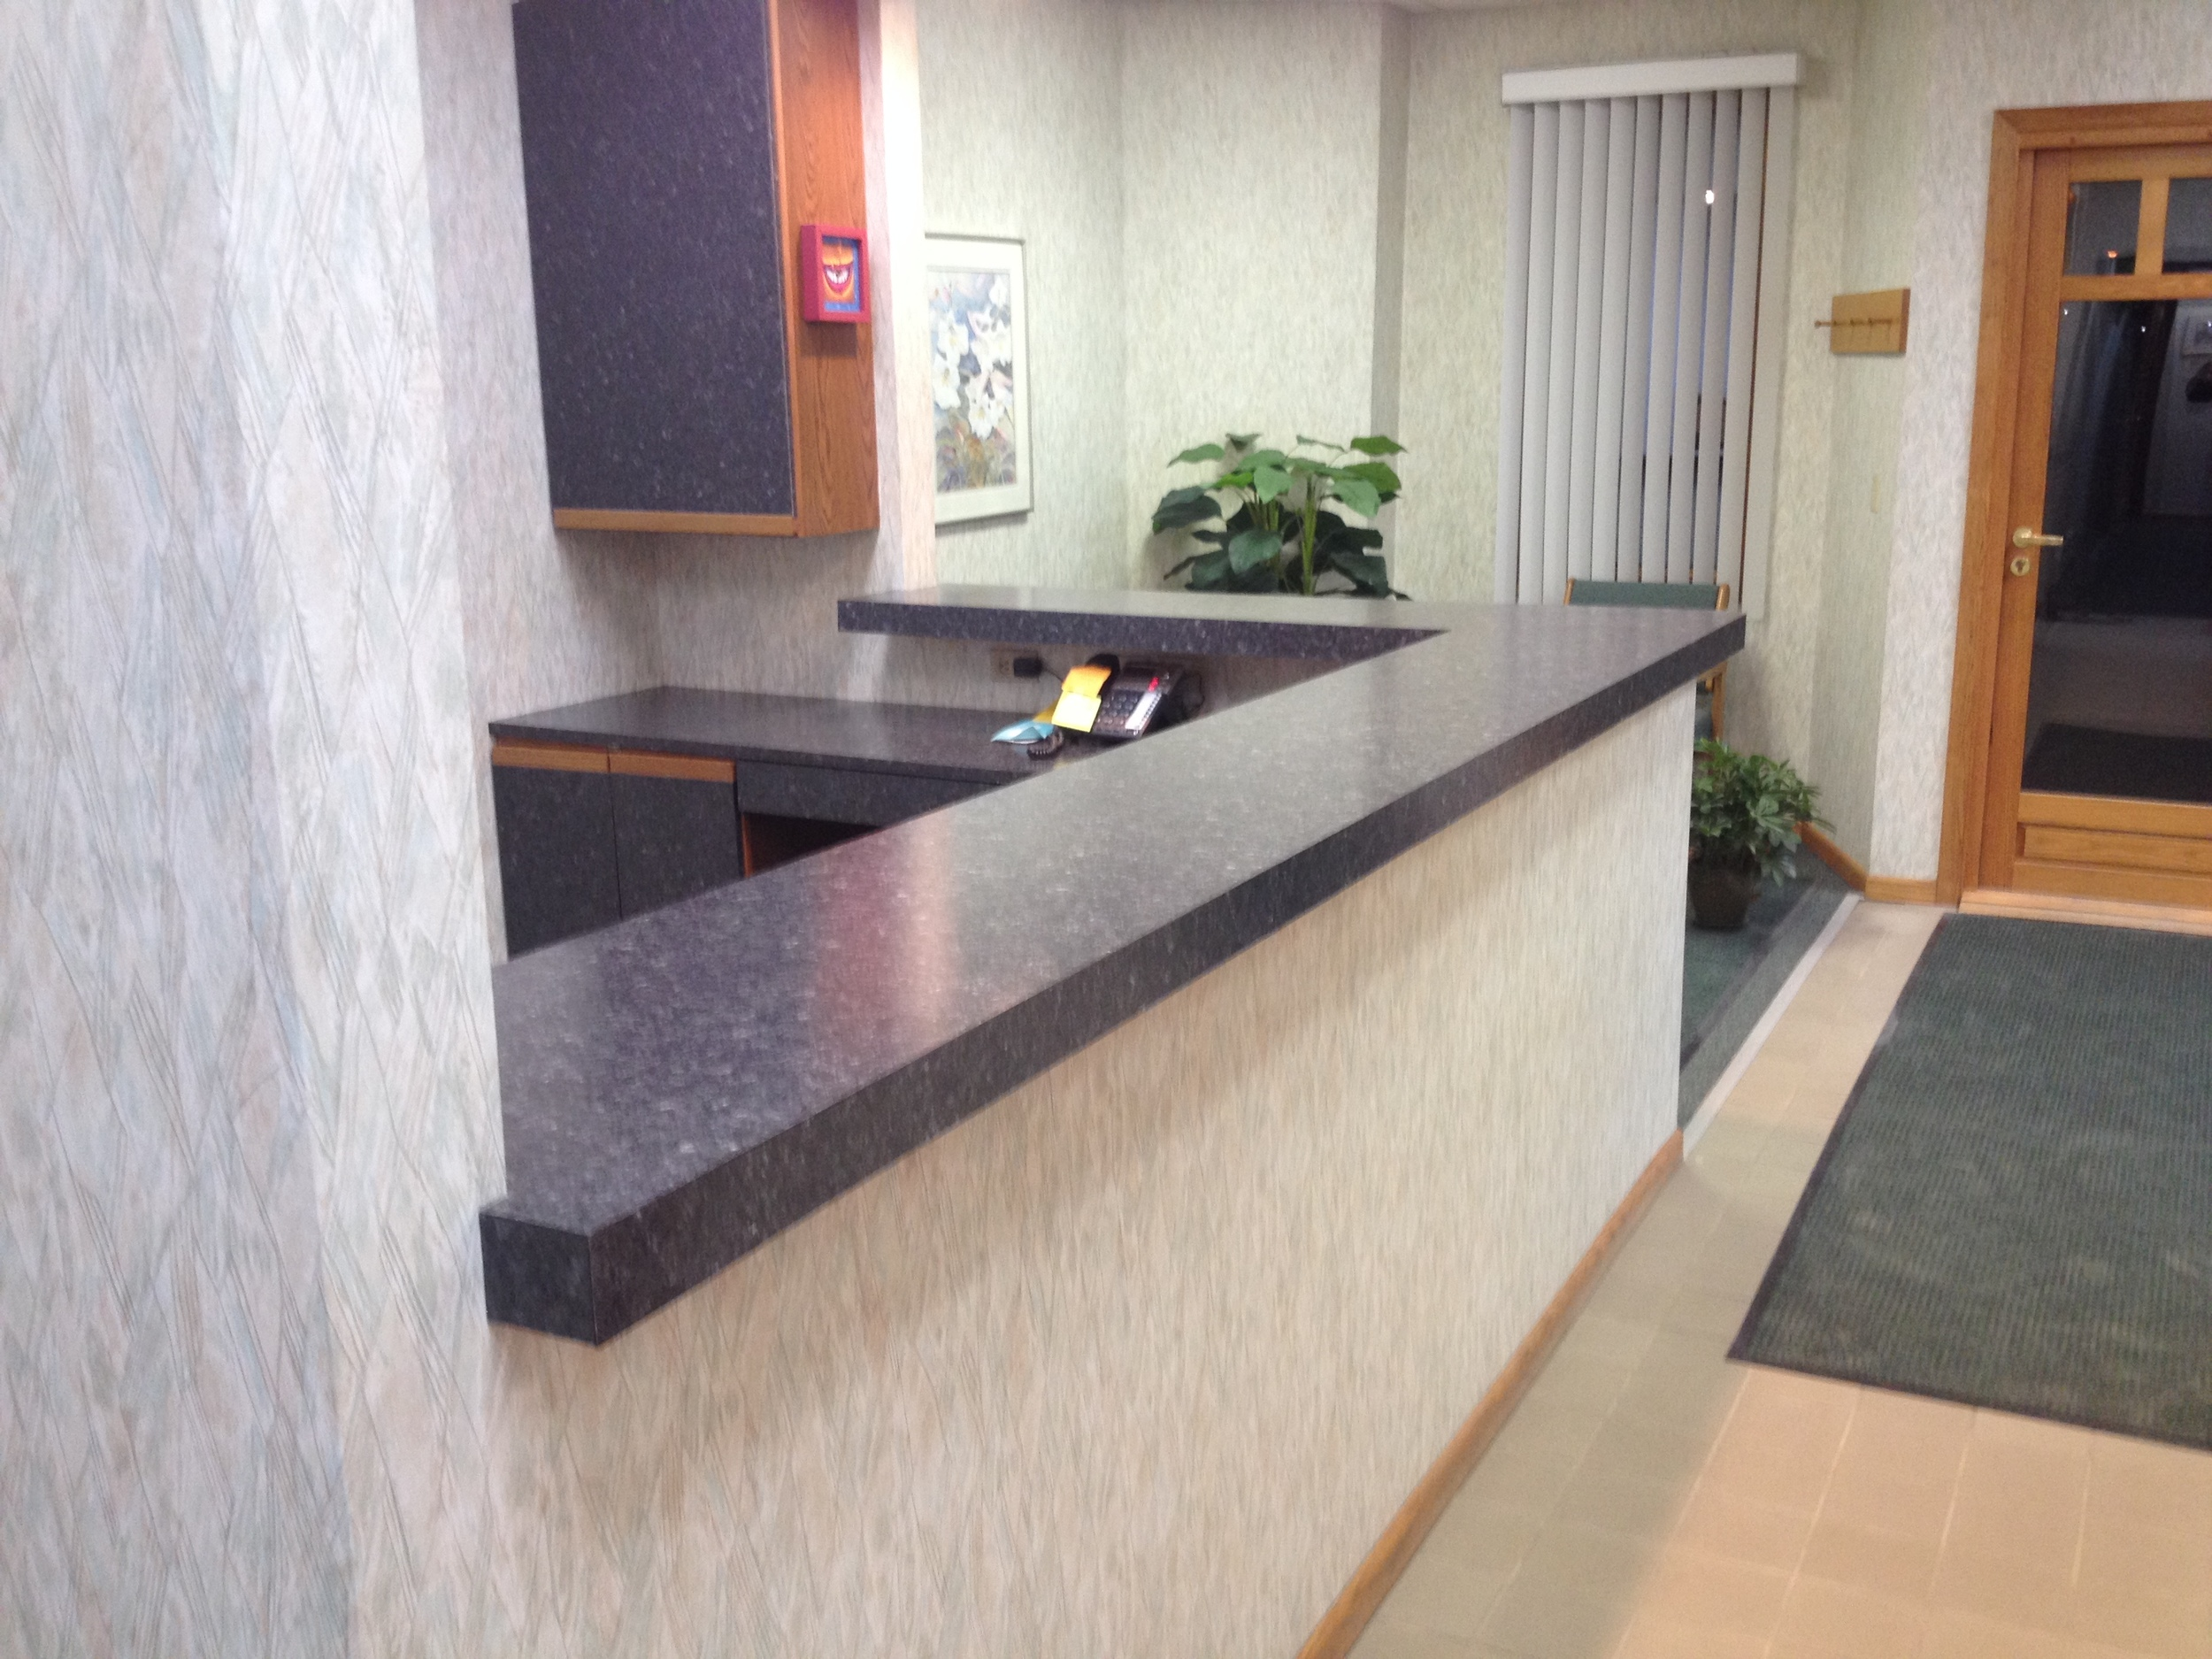 Refacing of Office Countertops, Cabinets, and Drawers